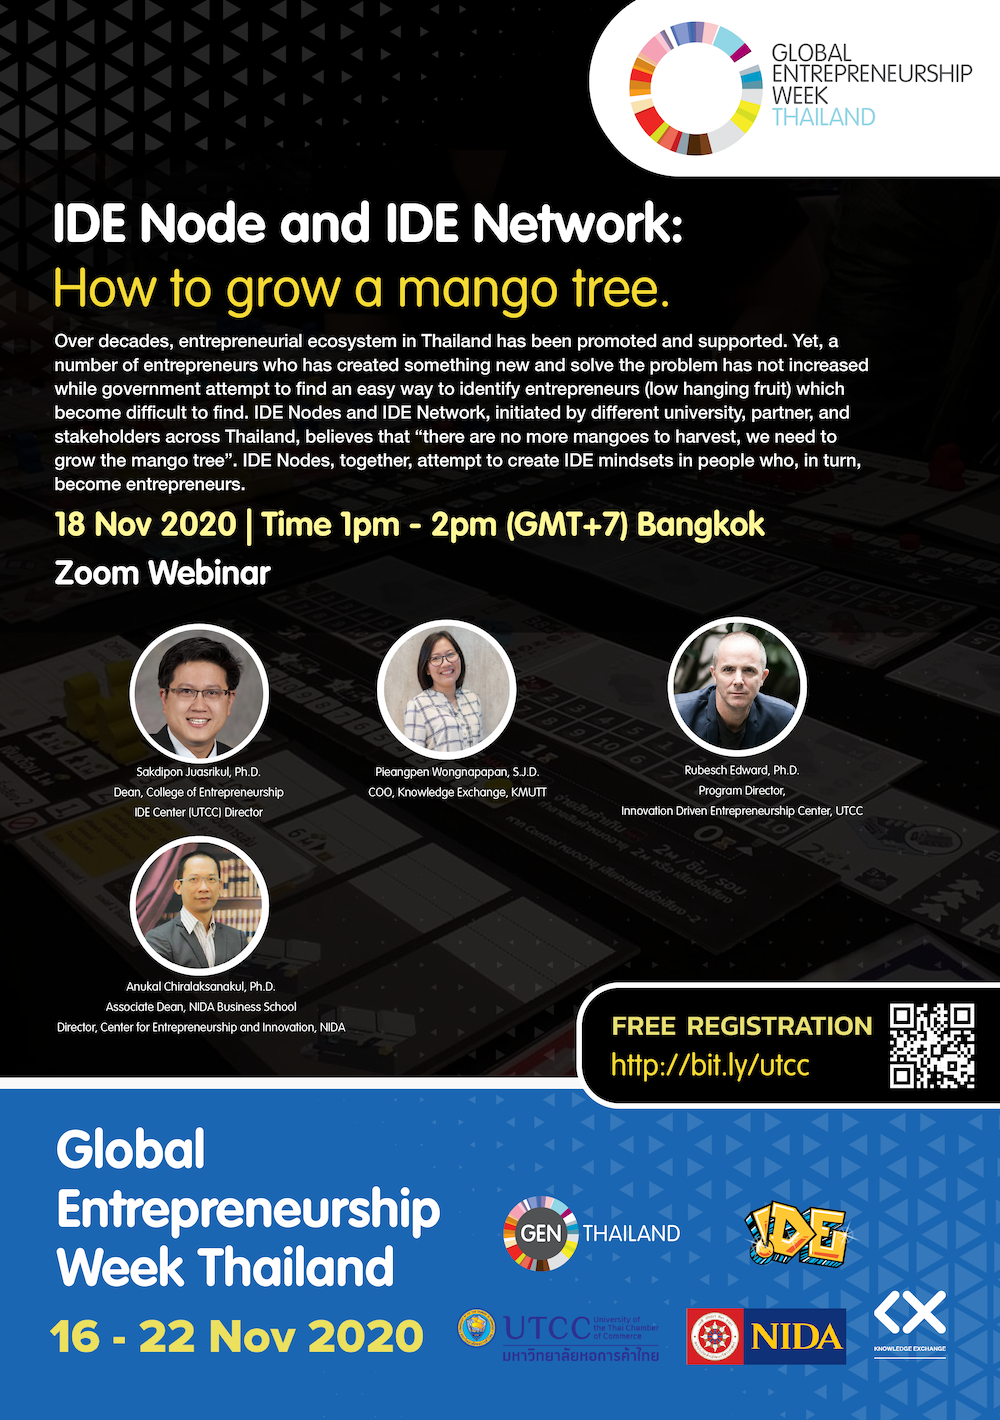 IDE Node and IDE Network: How to grow the mango tree, not build the airplane